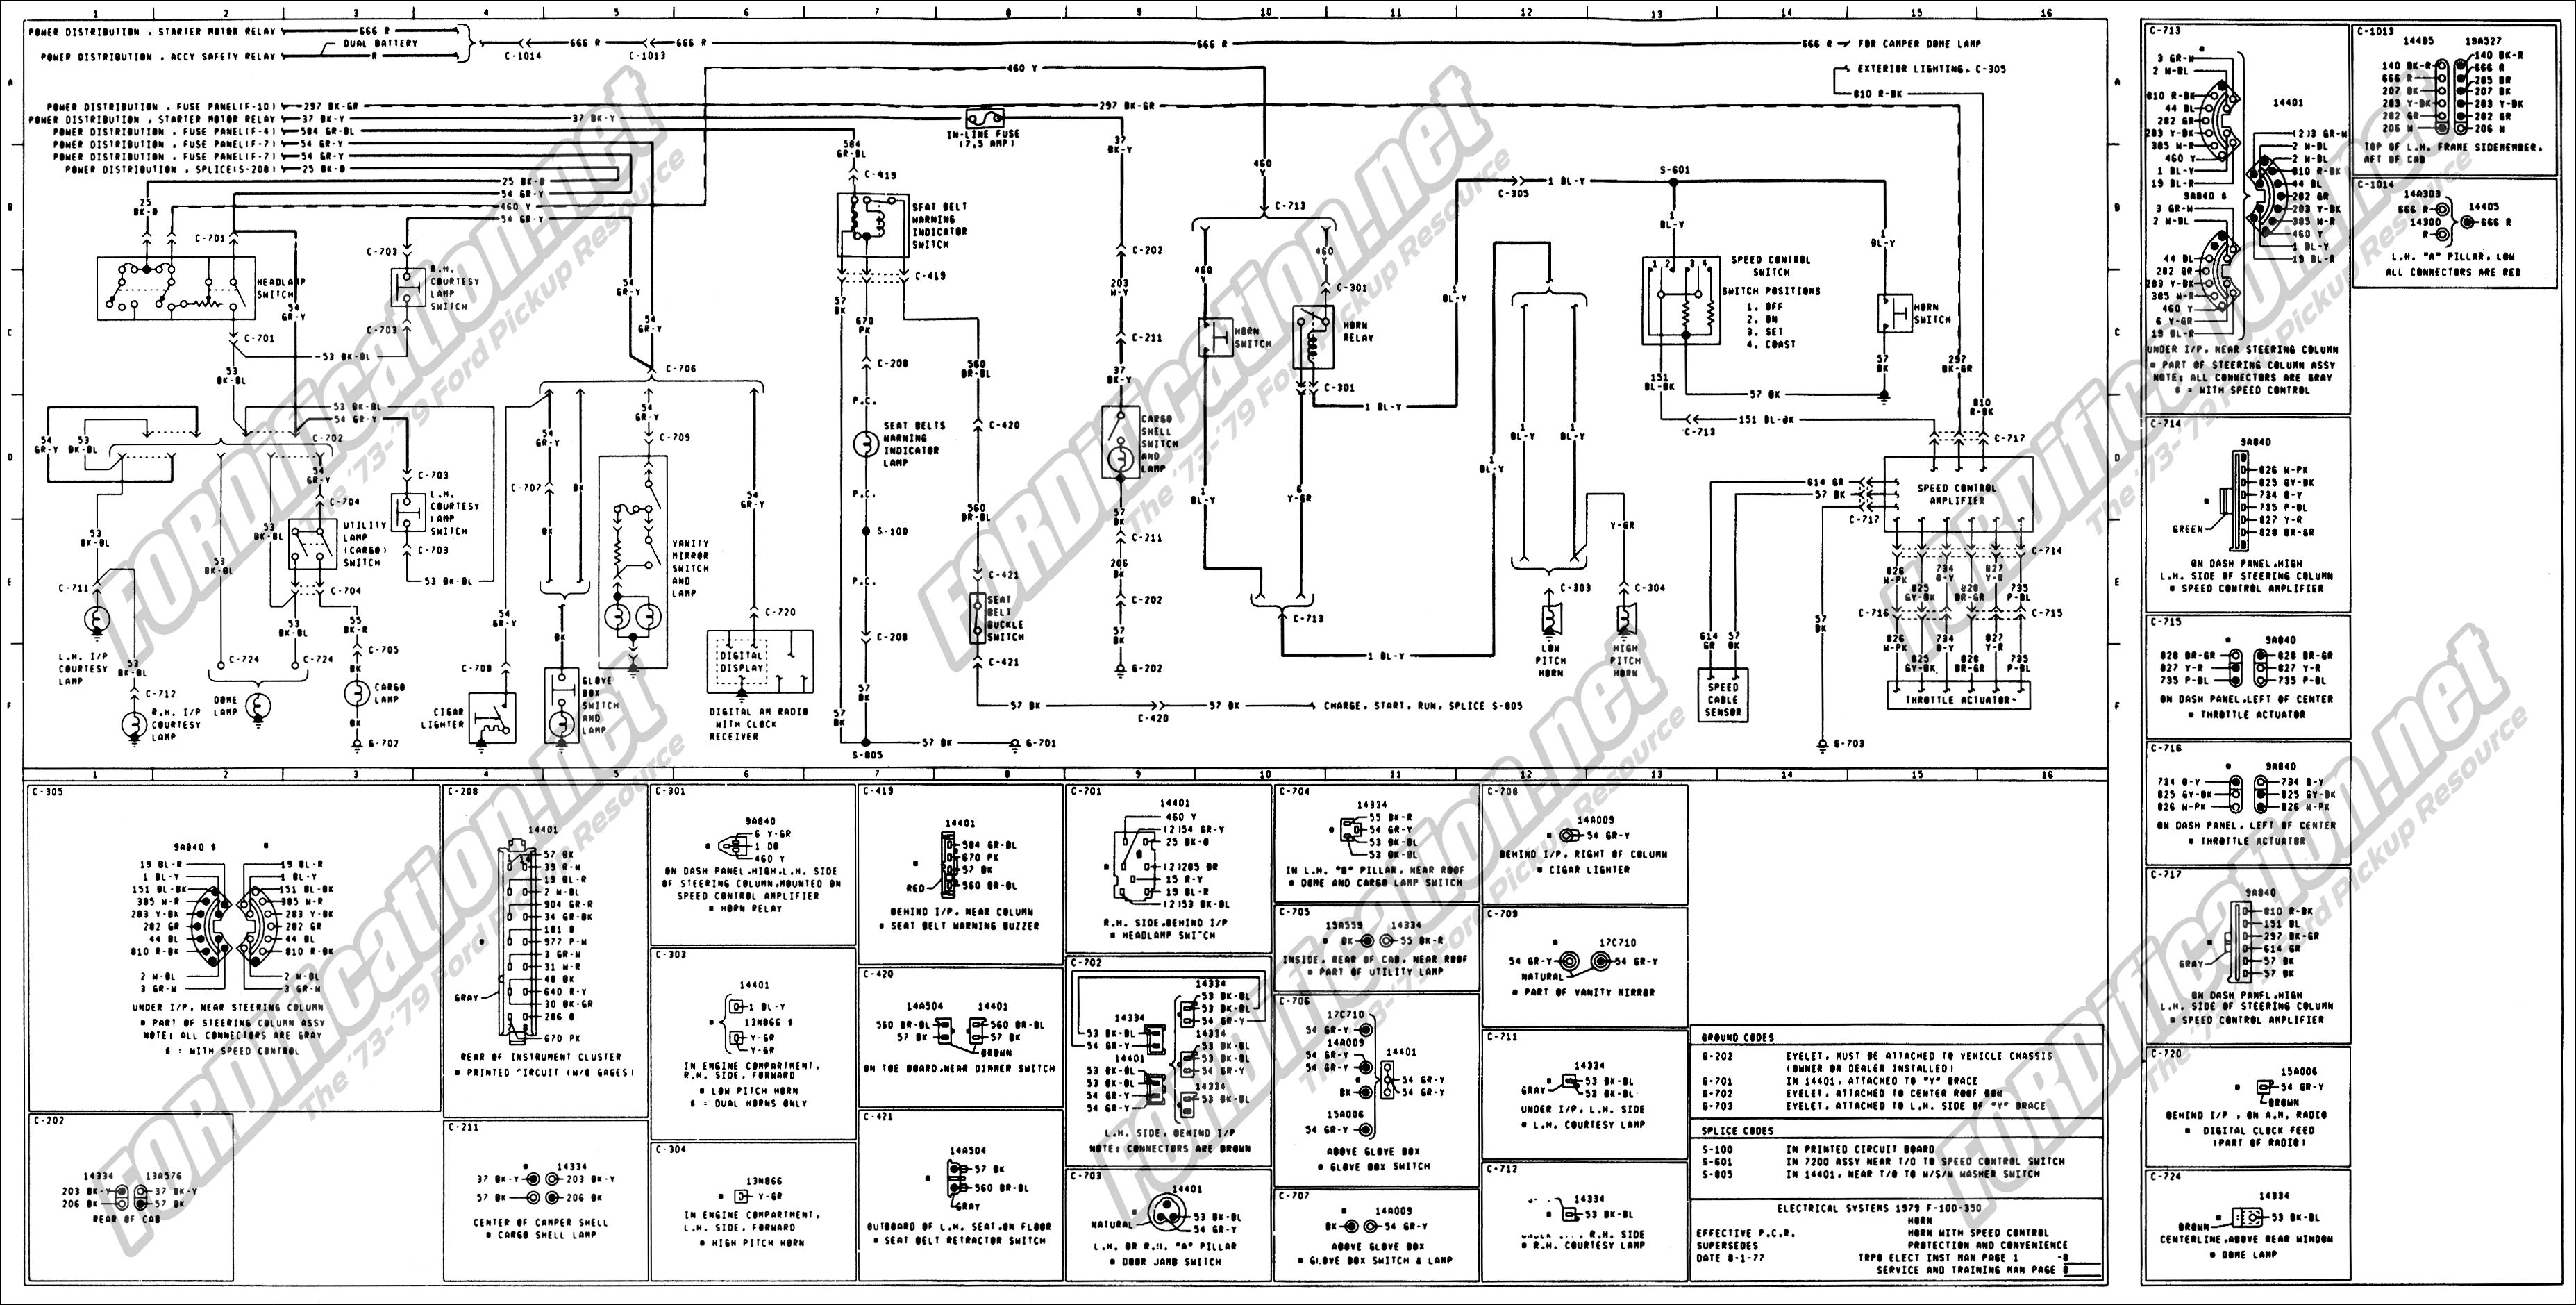 wiring_79master_8of9 1973 1979 ford truck wiring diagrams & schematics fordification net 1989 F250 Wiring Diagram at bayanpartner.co